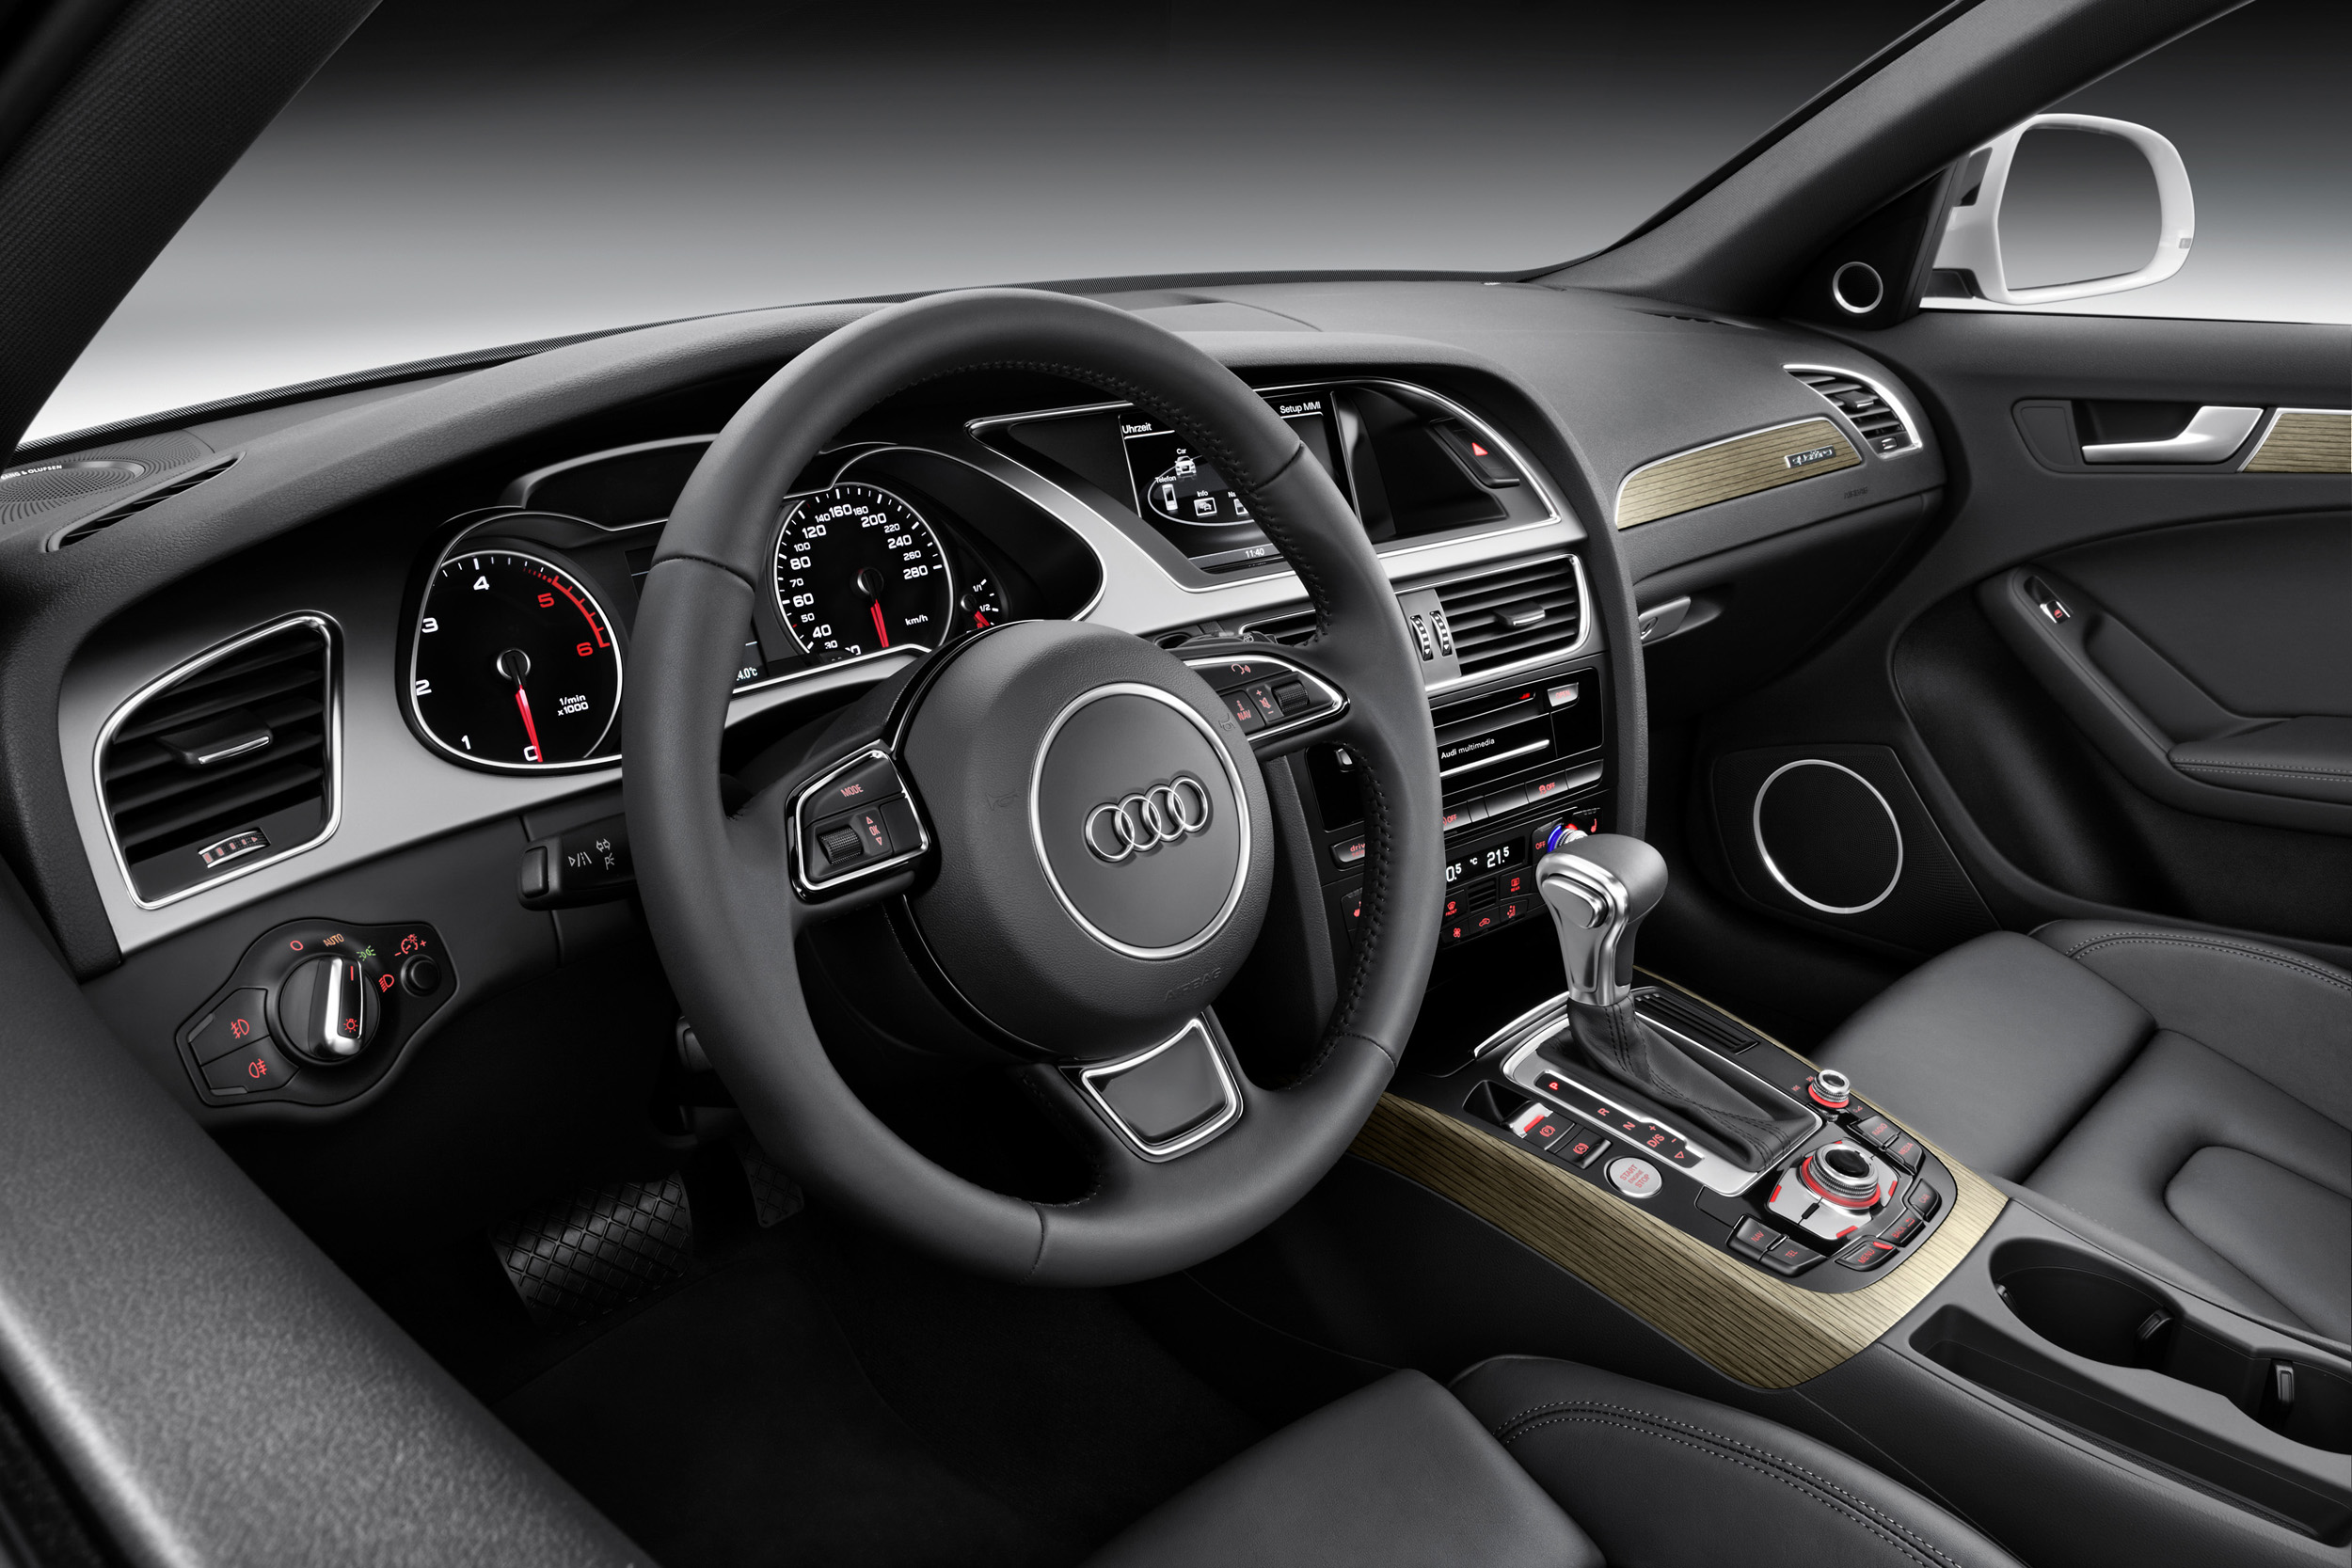 tdi new s offers line price audi sale now offer was demonstrator avant